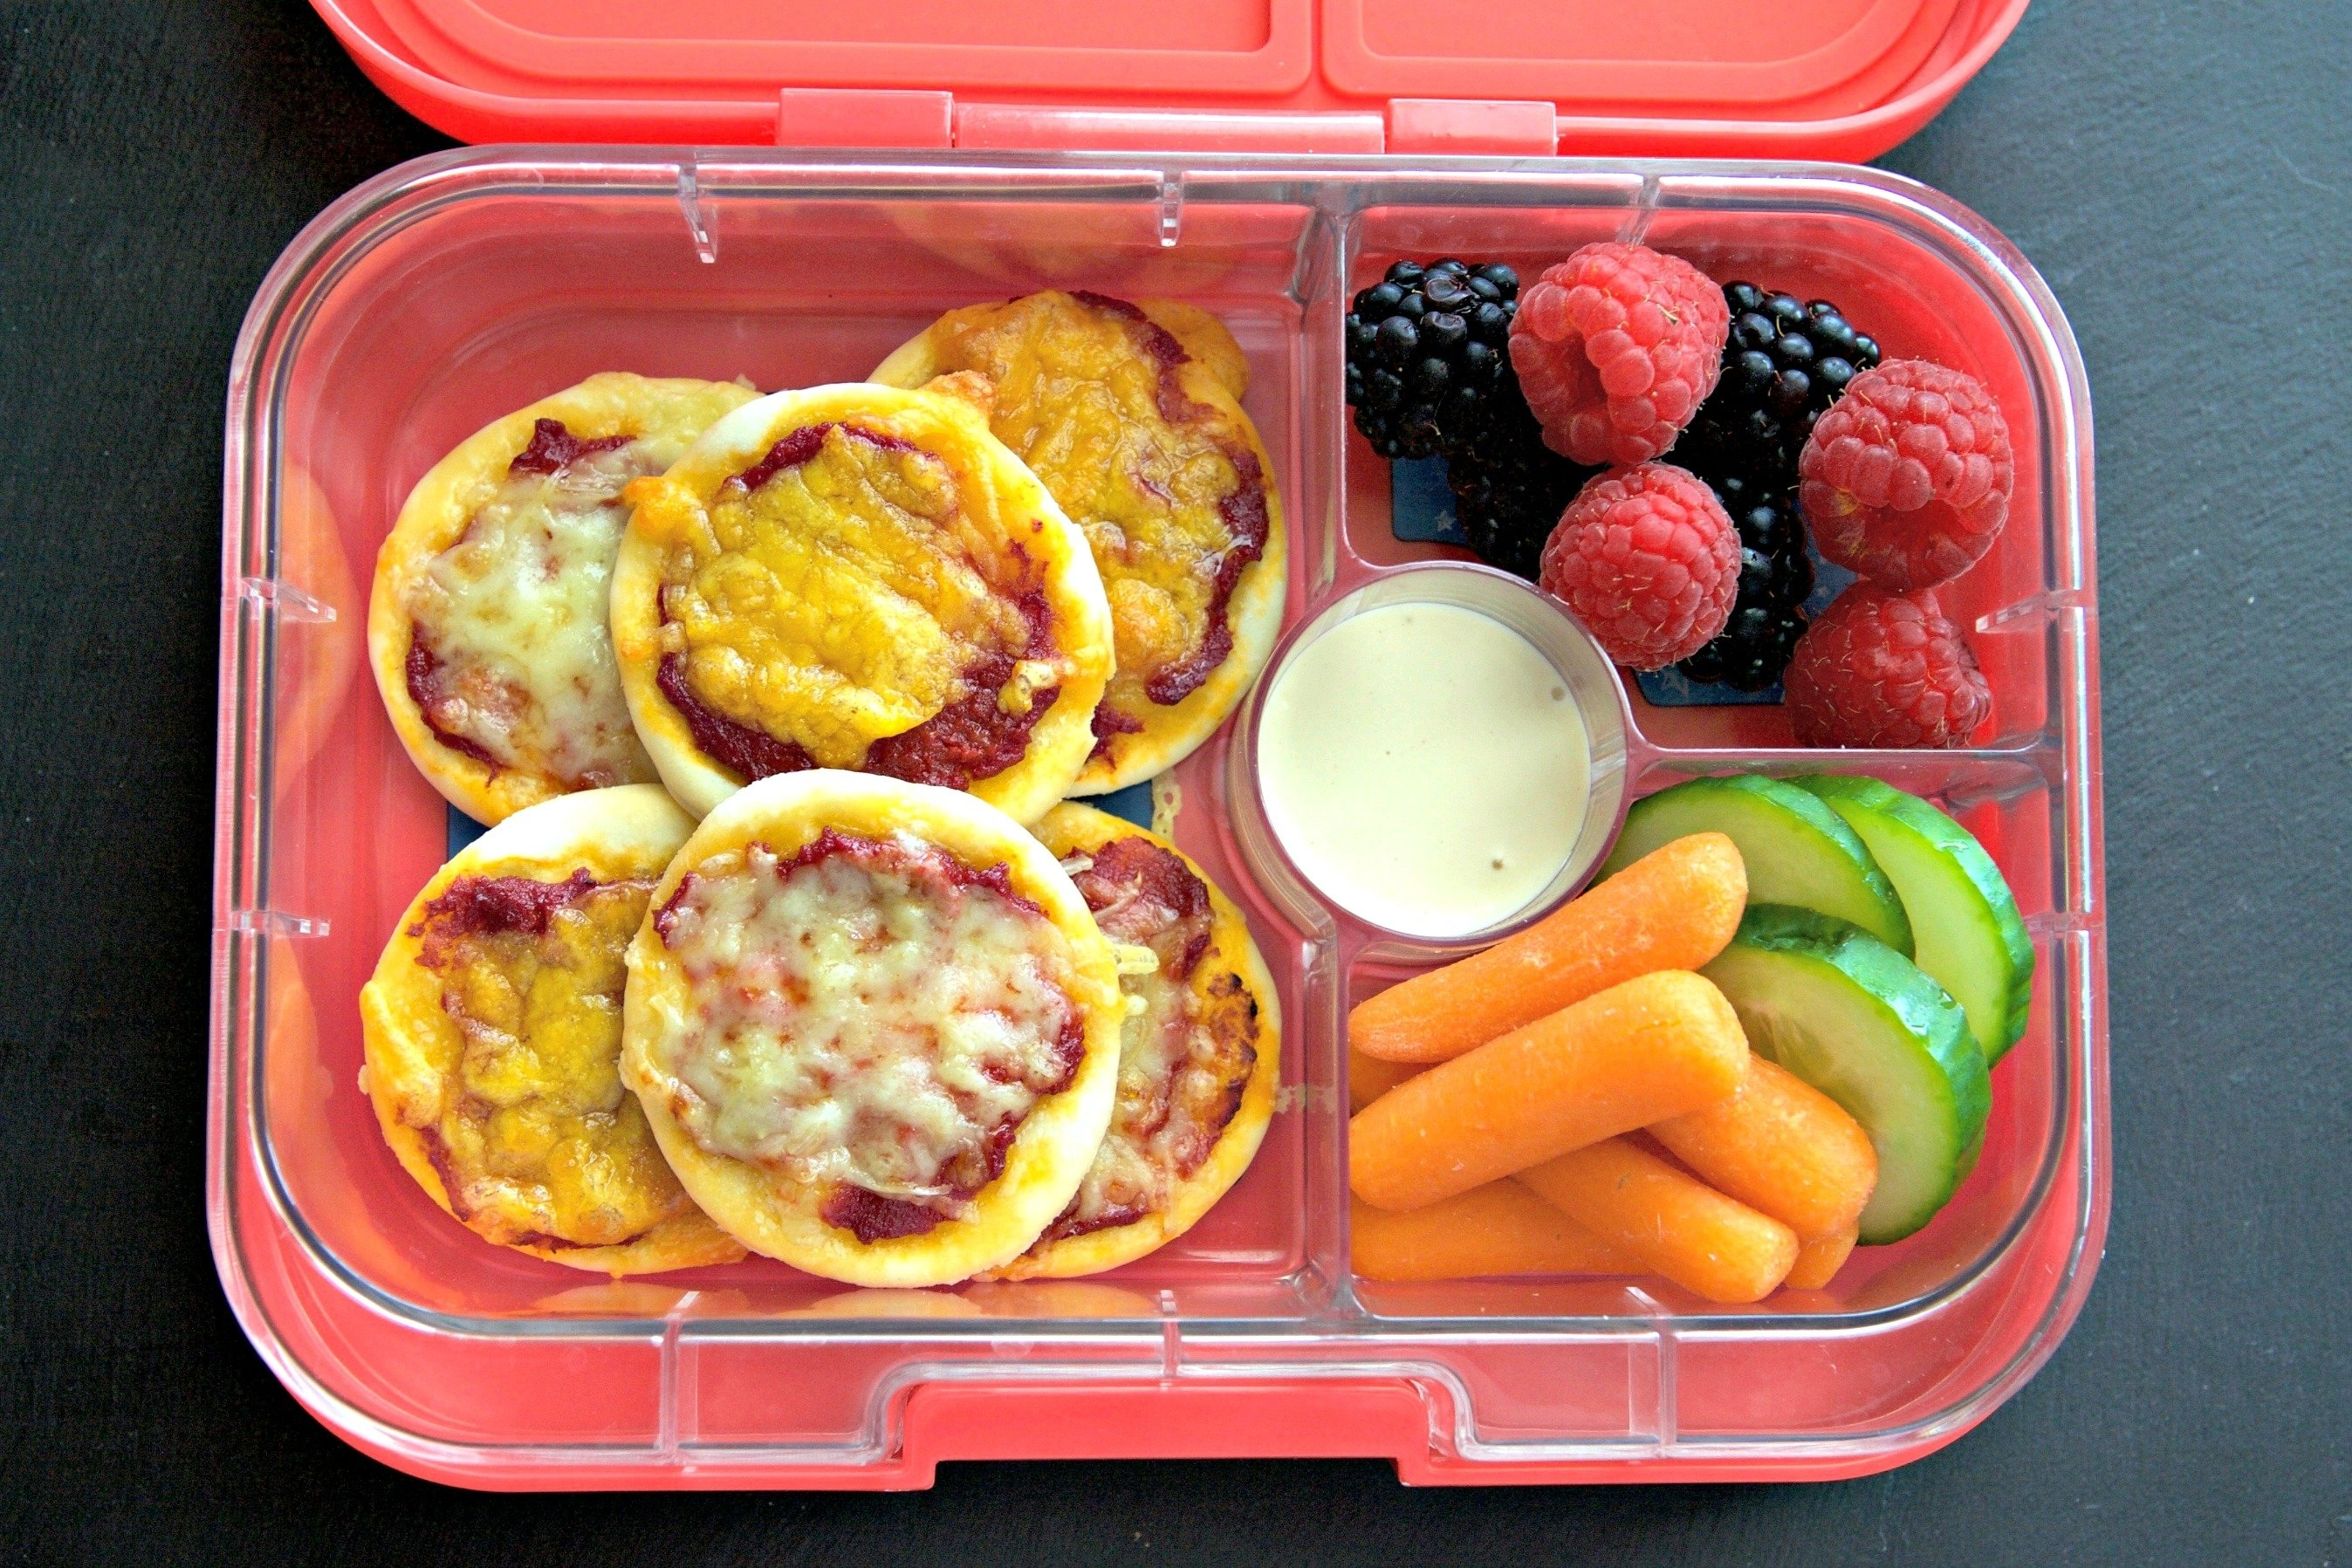 10 Spectacular Kids Lunch Ideas For Picky Eaters mini pizza recipe the perfect picky eater meal yumbox 2 2020